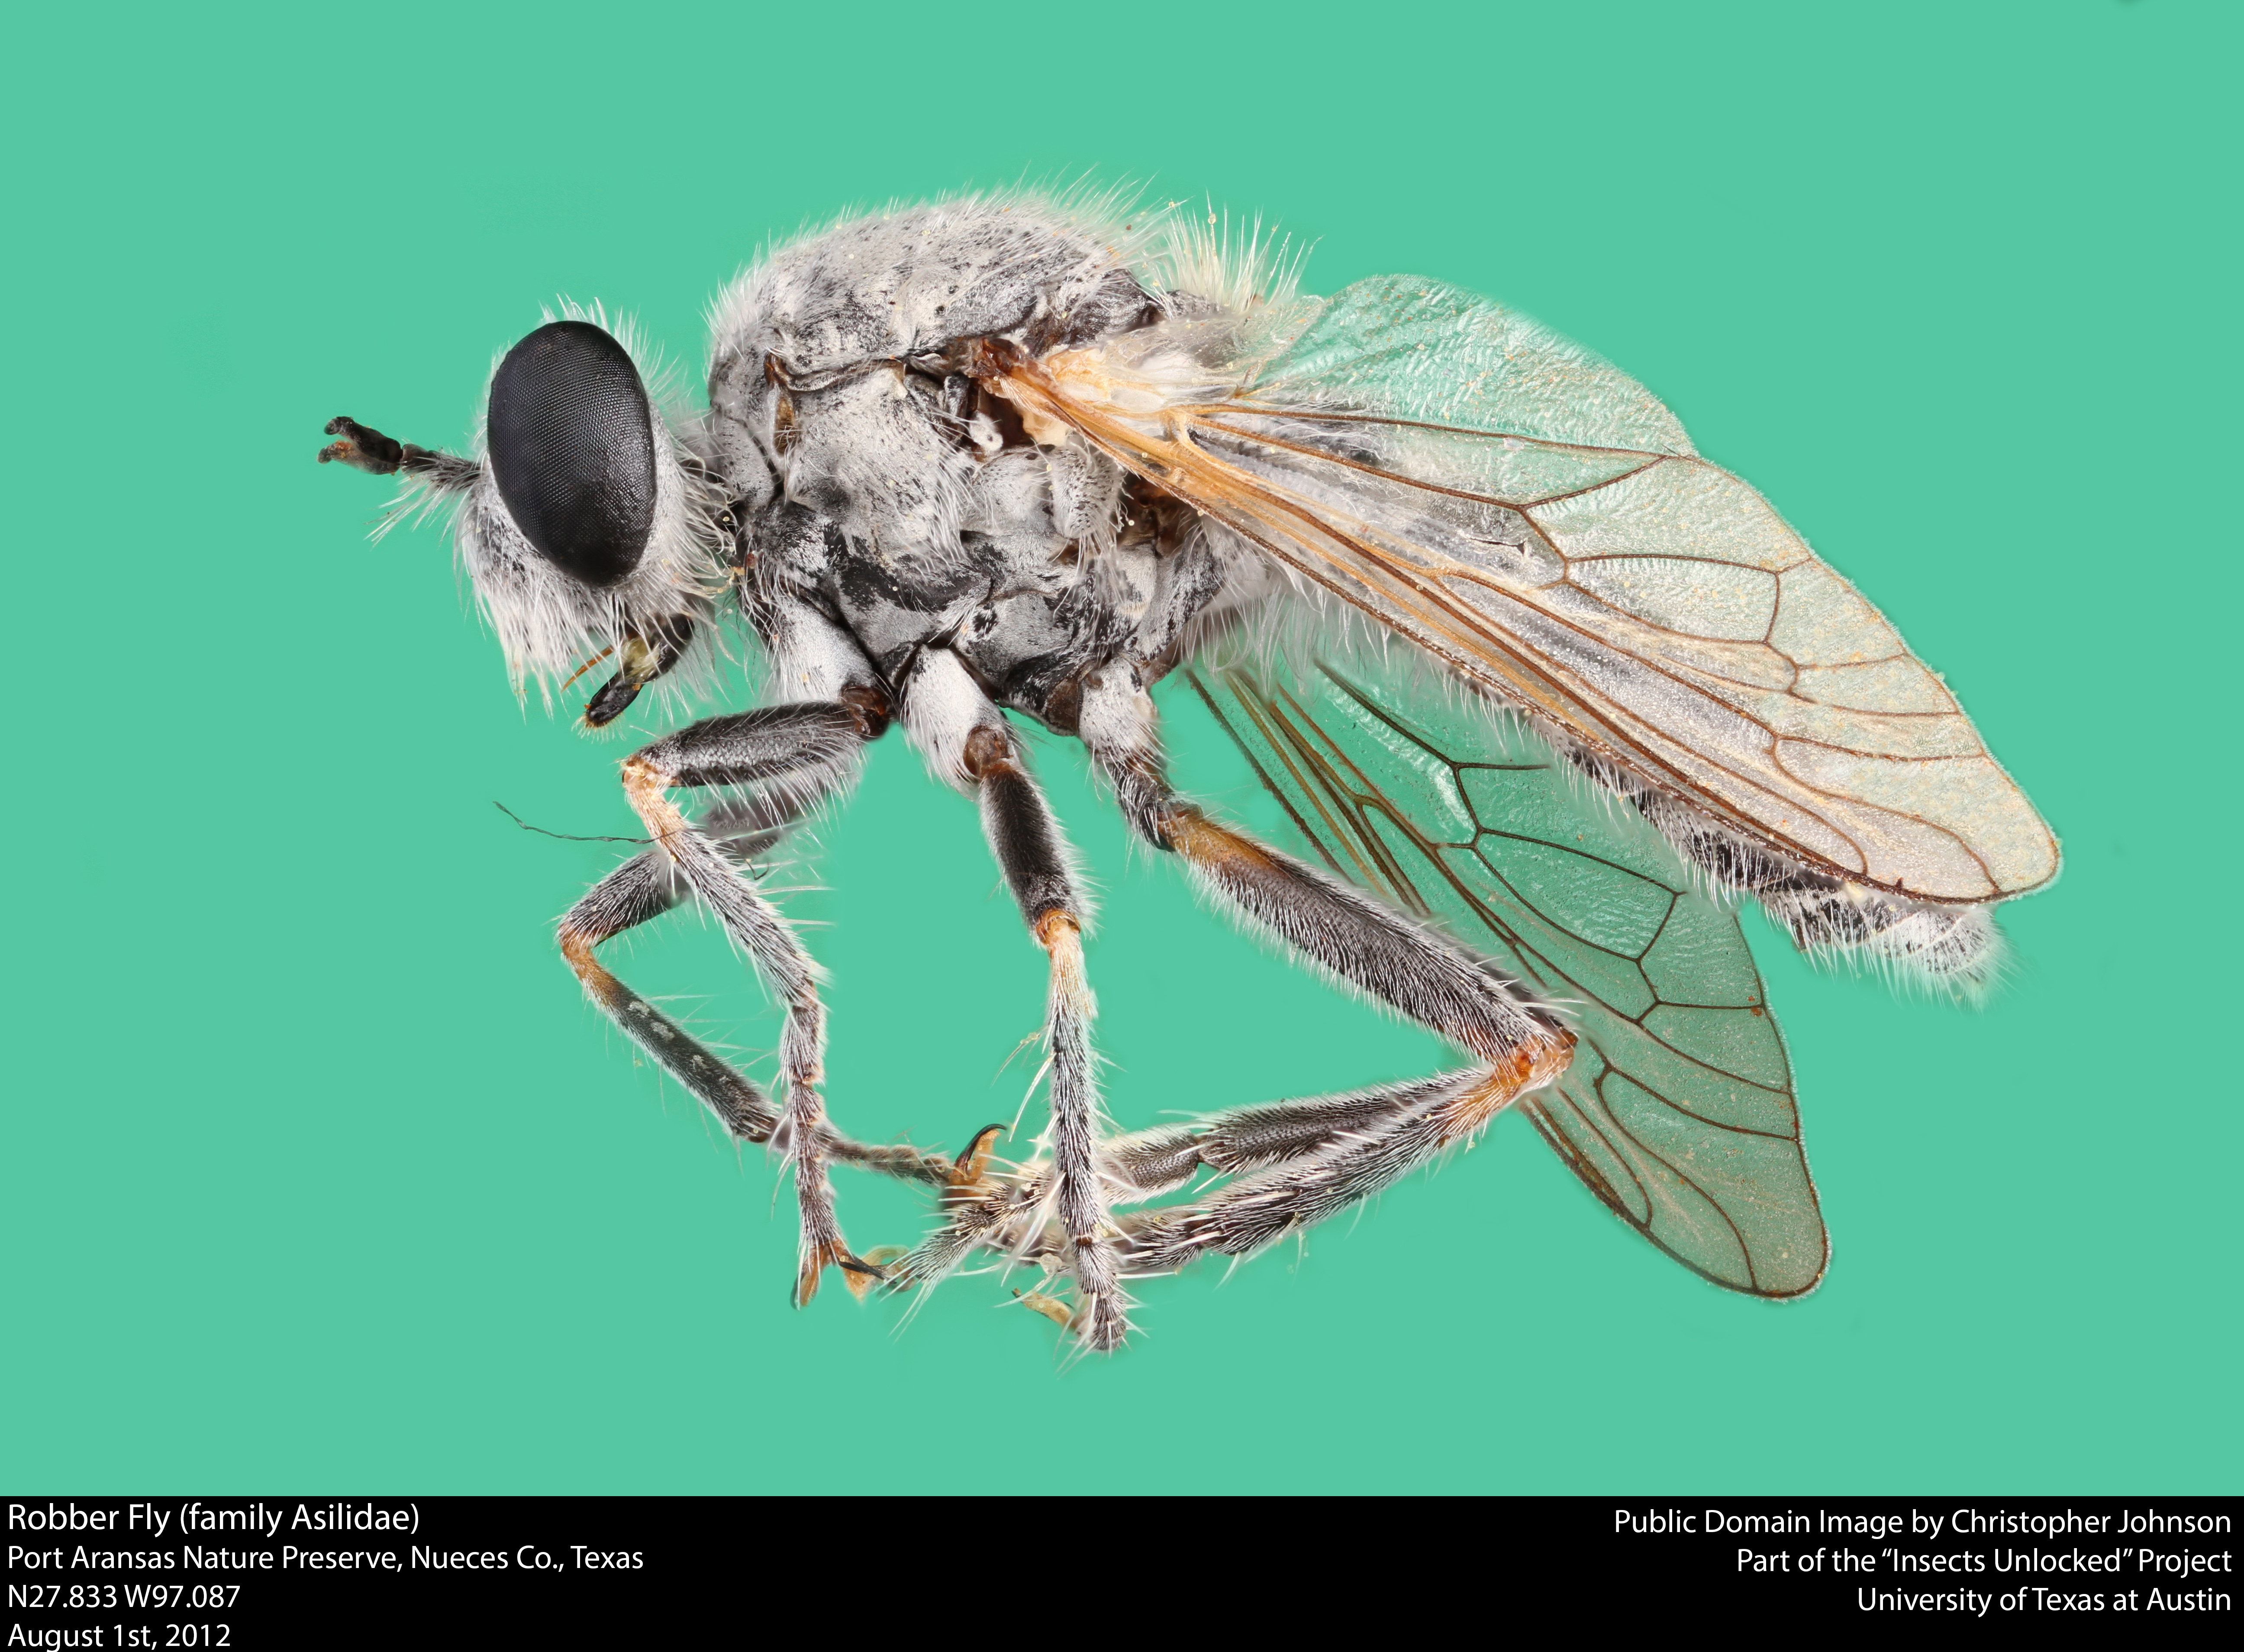 Robber fly (family asilidae) photo